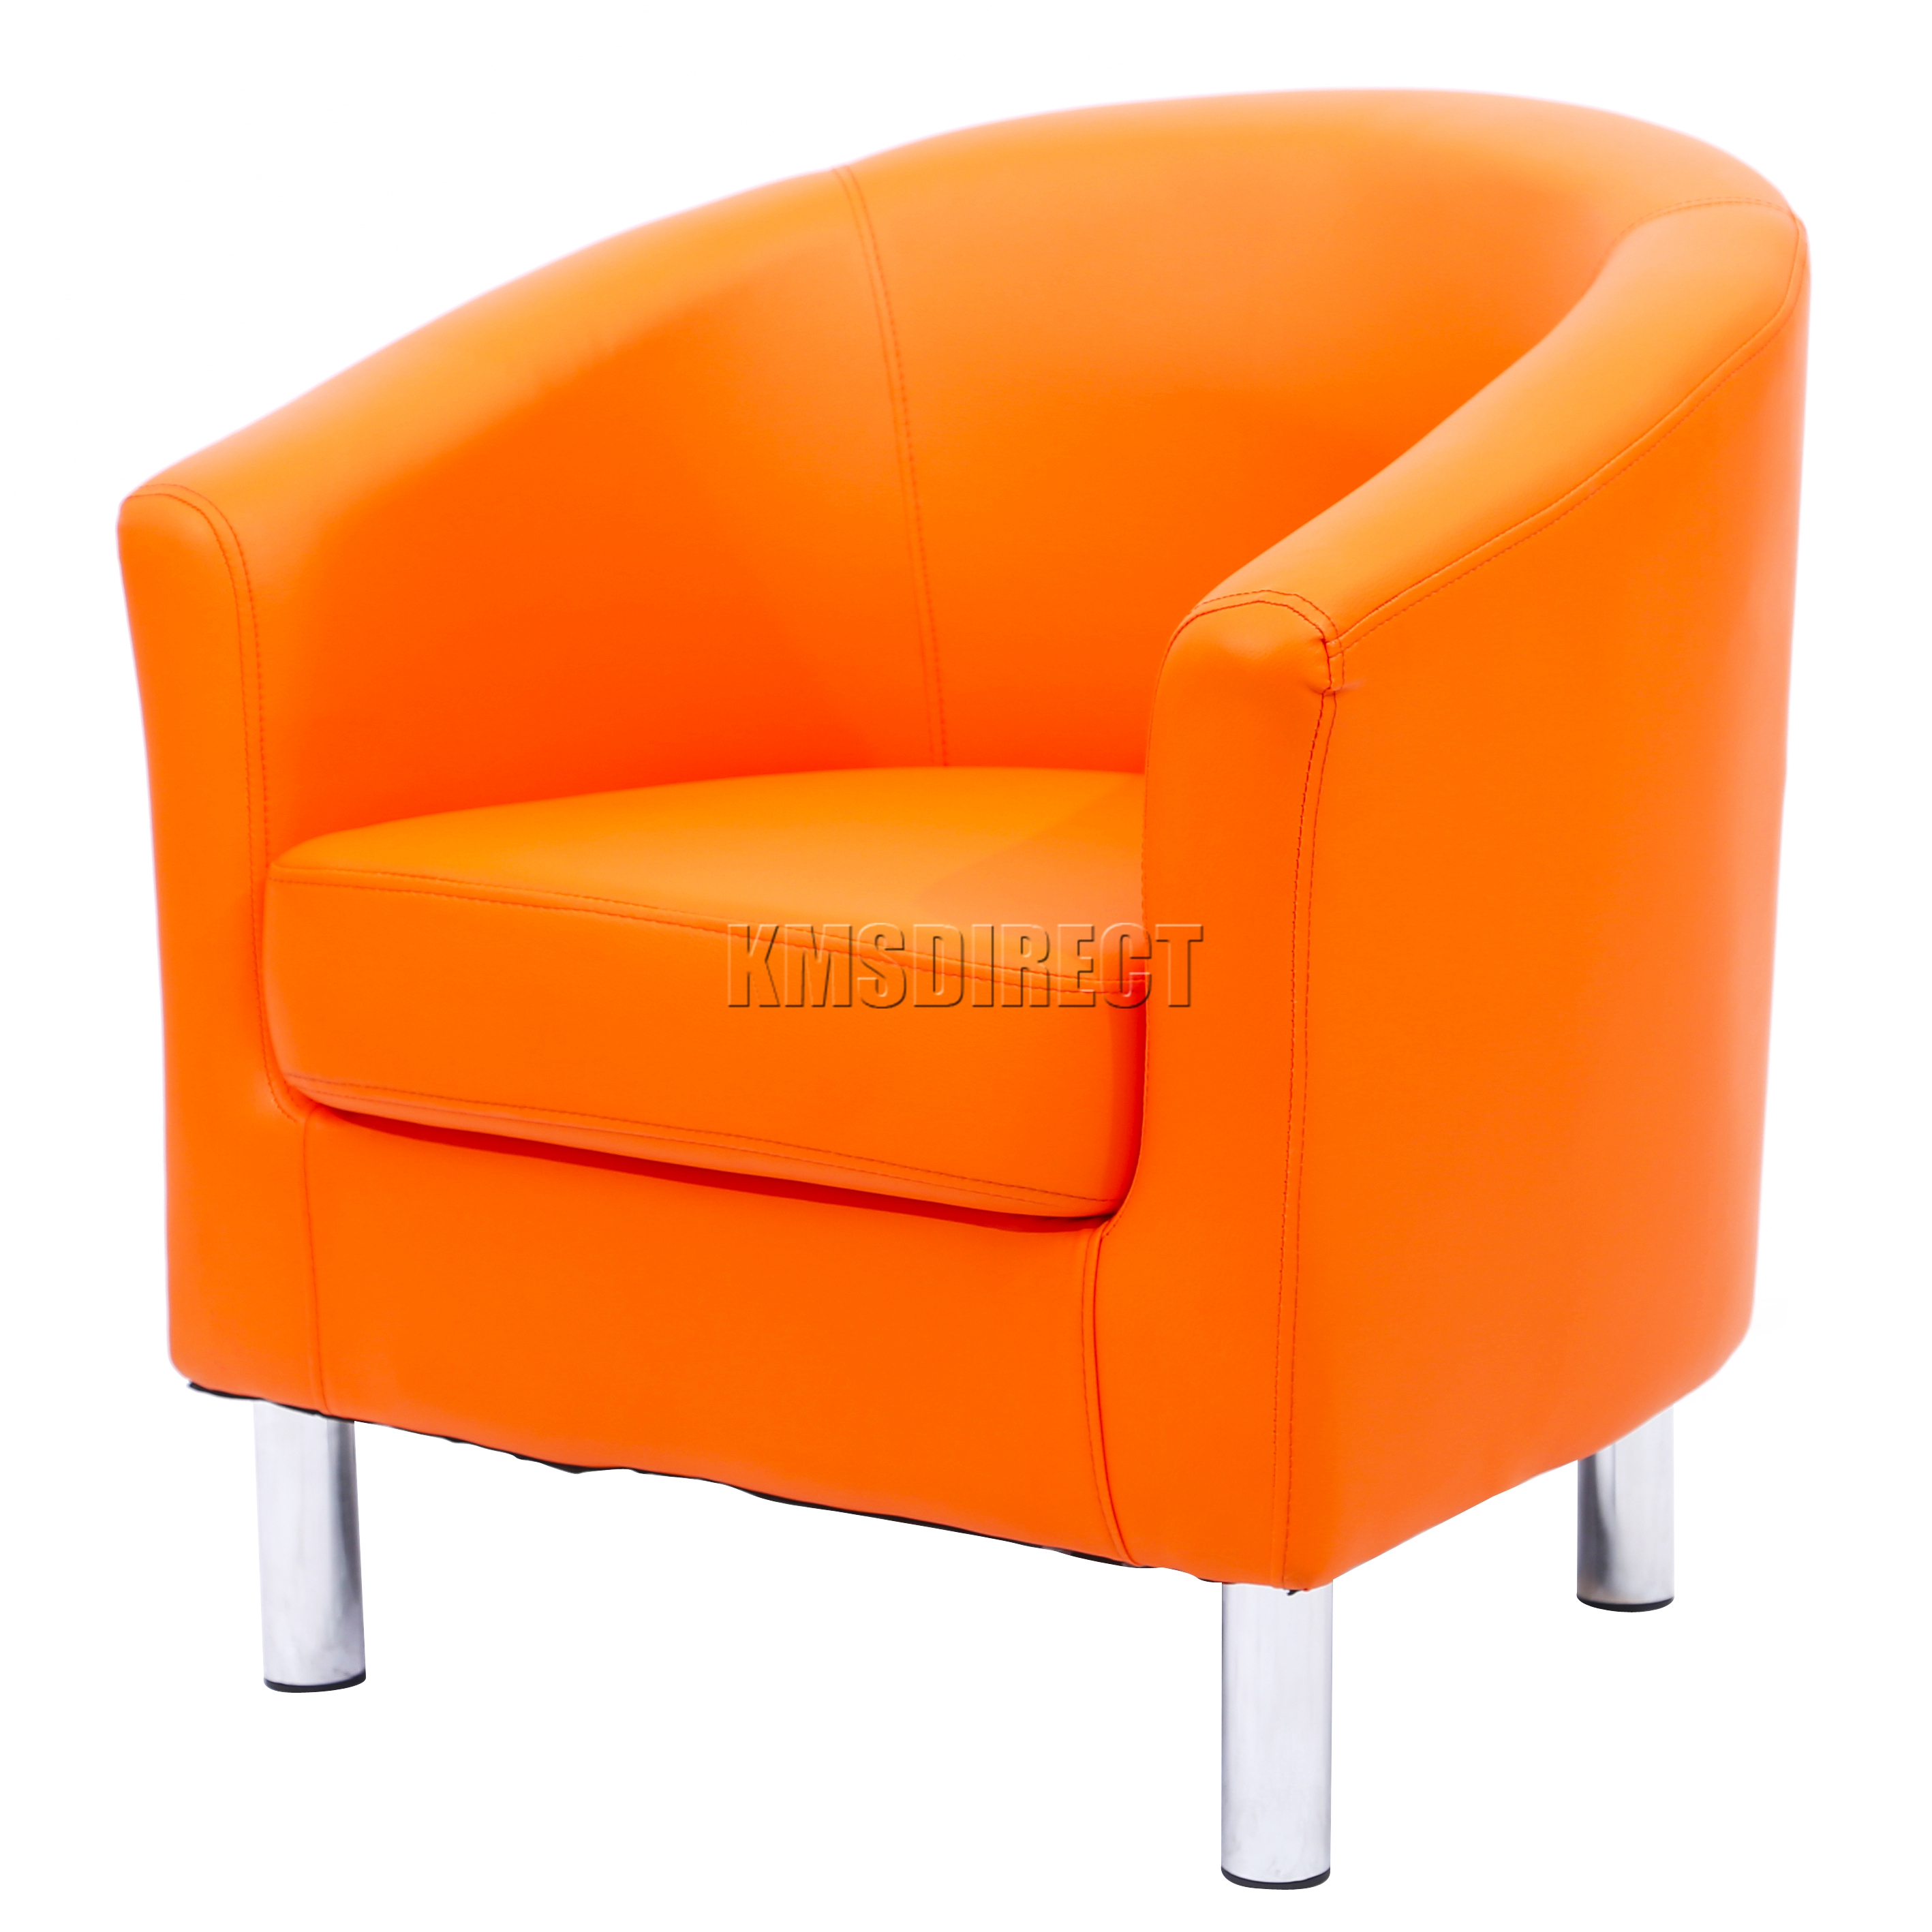 orange bucket chair extra wide rocking foxhunter modern tub armchair pu faux leather chrome